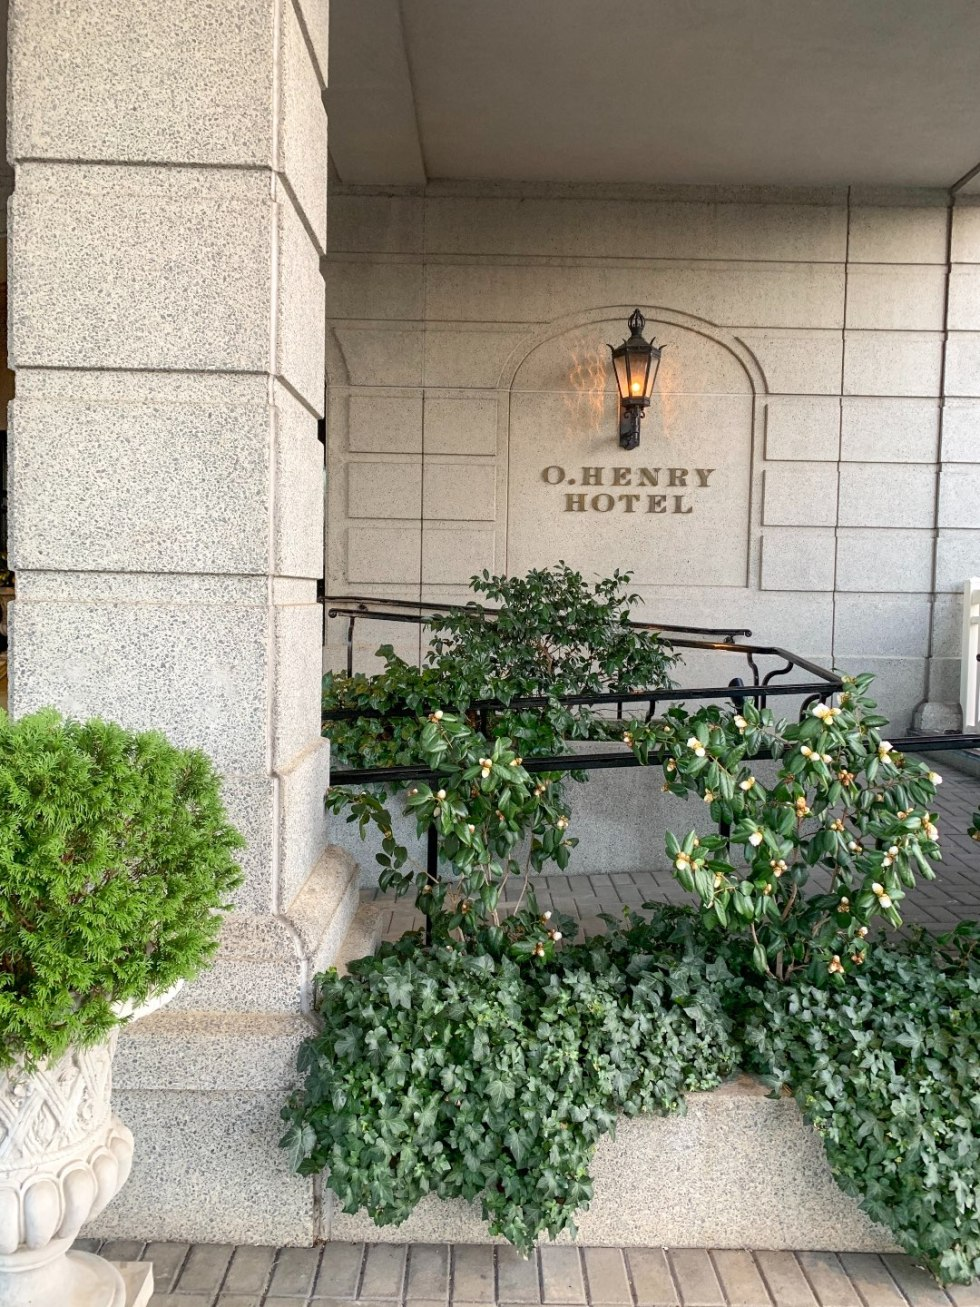 A Night at the O.Henry Hotel In Greensboro, NC - I'm Fixin' To - @mbg0112 |  A Night at the O.Henry Hotel In Greensboro, NC by popular North Carolina blog, I'm fixin' To: image of the exterior of the O. Henry Hotel with green shrub bushes and ivy landscaping.